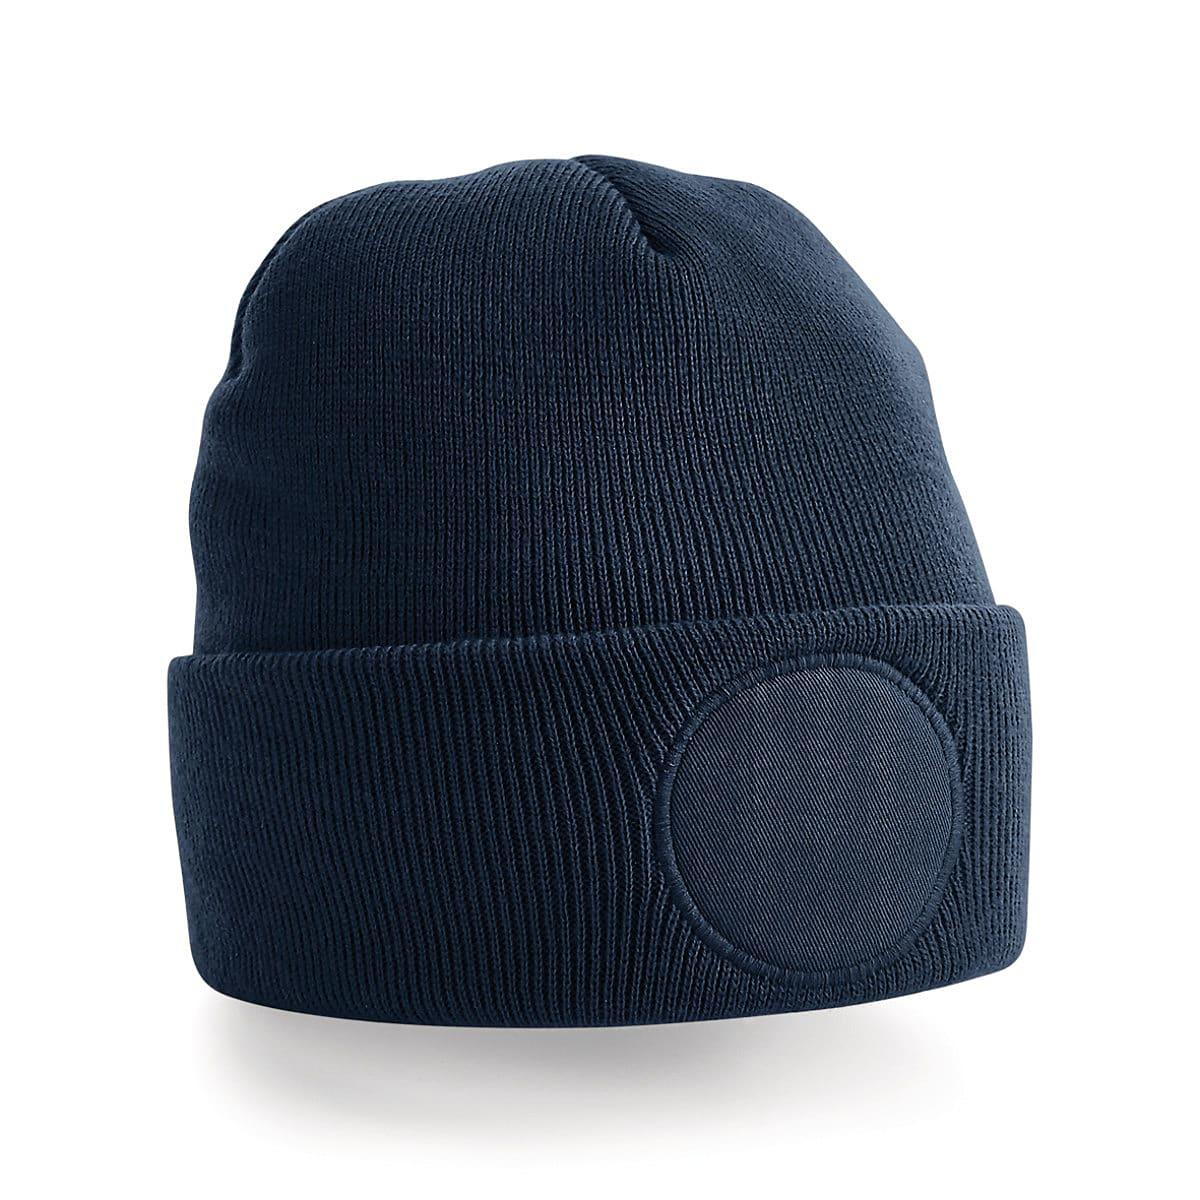 Beechfield Circular Patch Beanie Hat in French Navy (Product Code: B446)